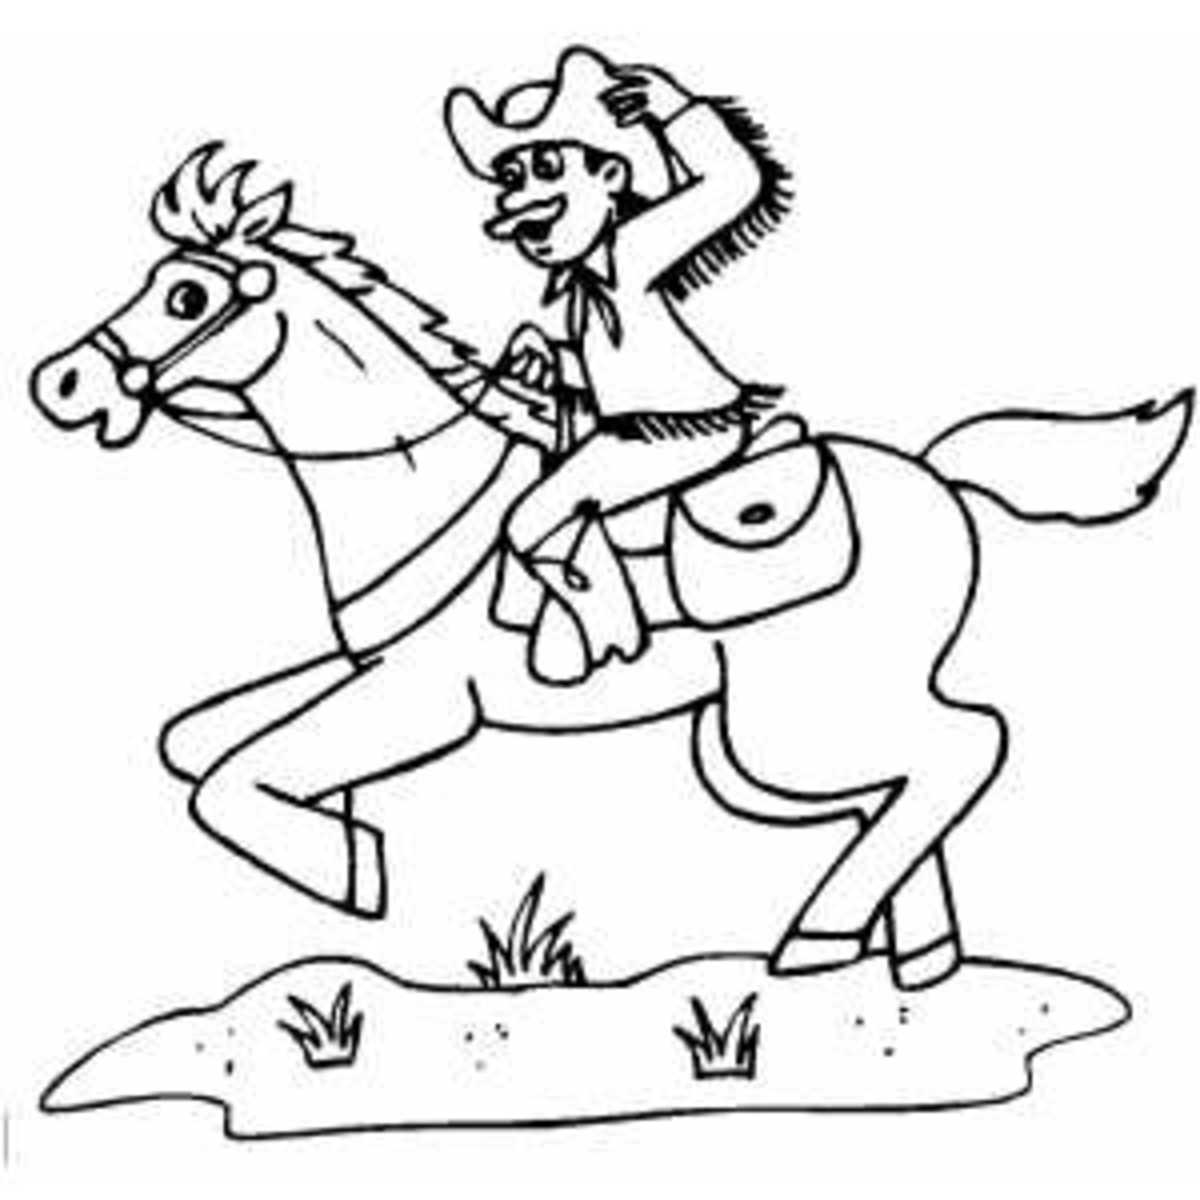 western coloring pages for kids - photo#26